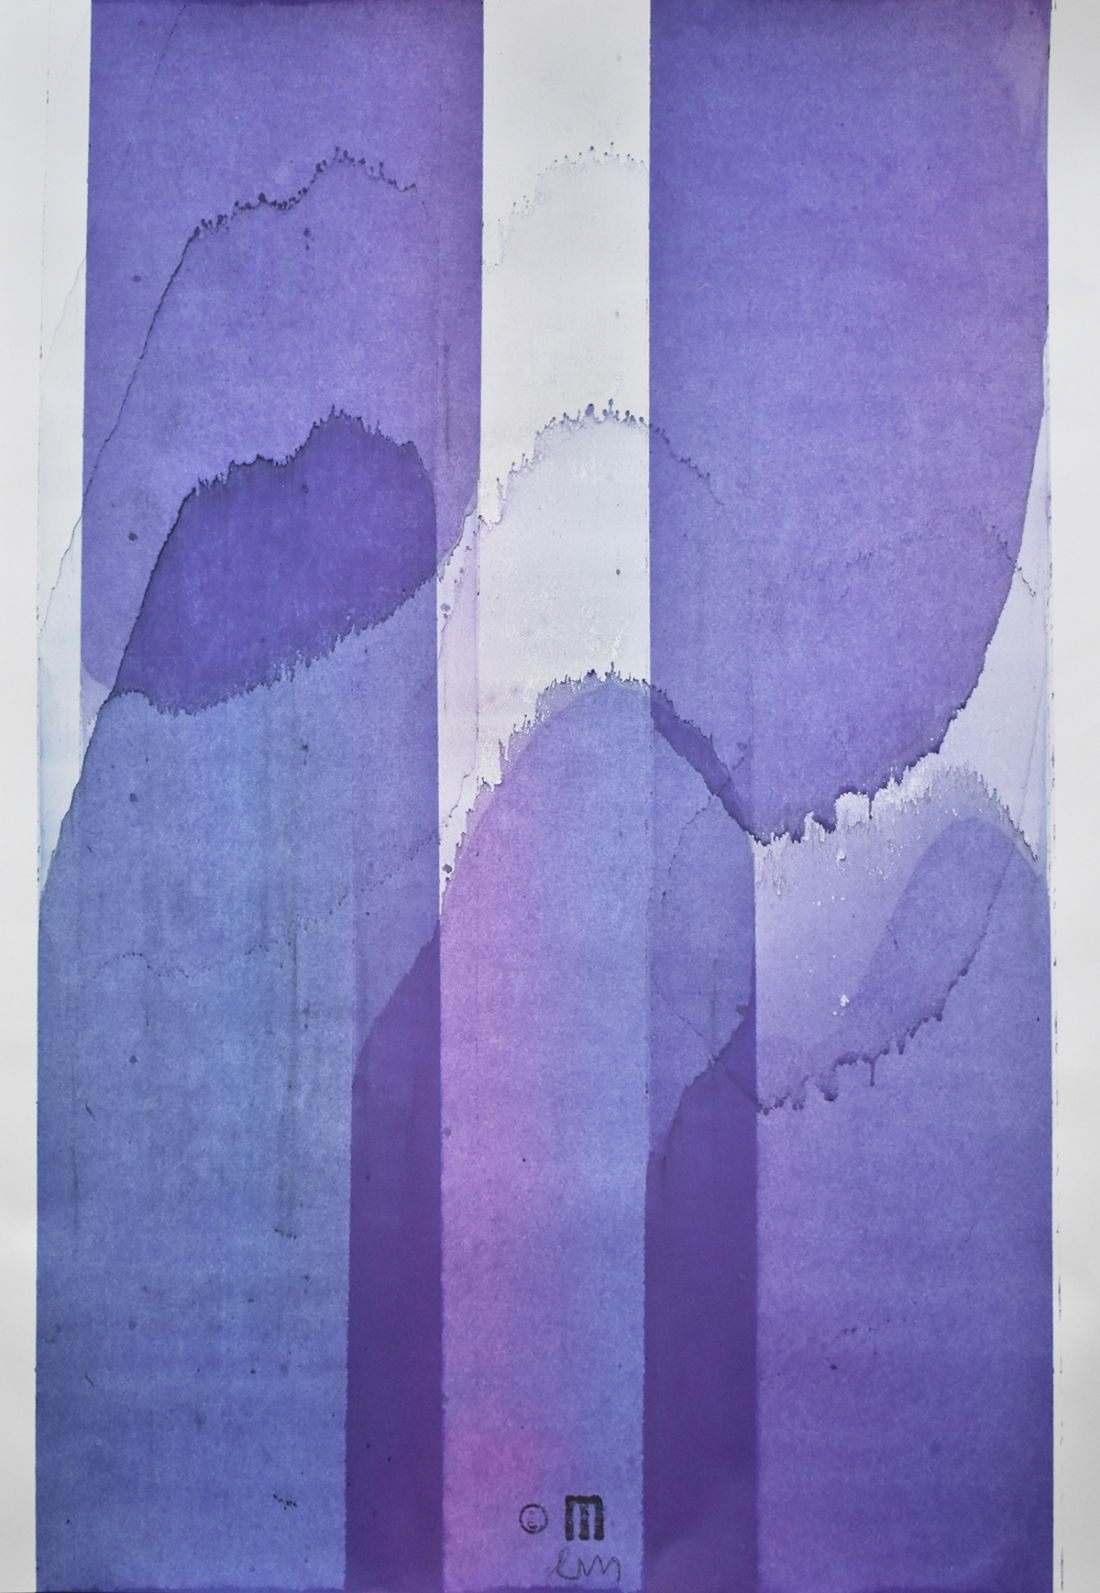 Pantone Color of the Year 2018 and Saatchi Art